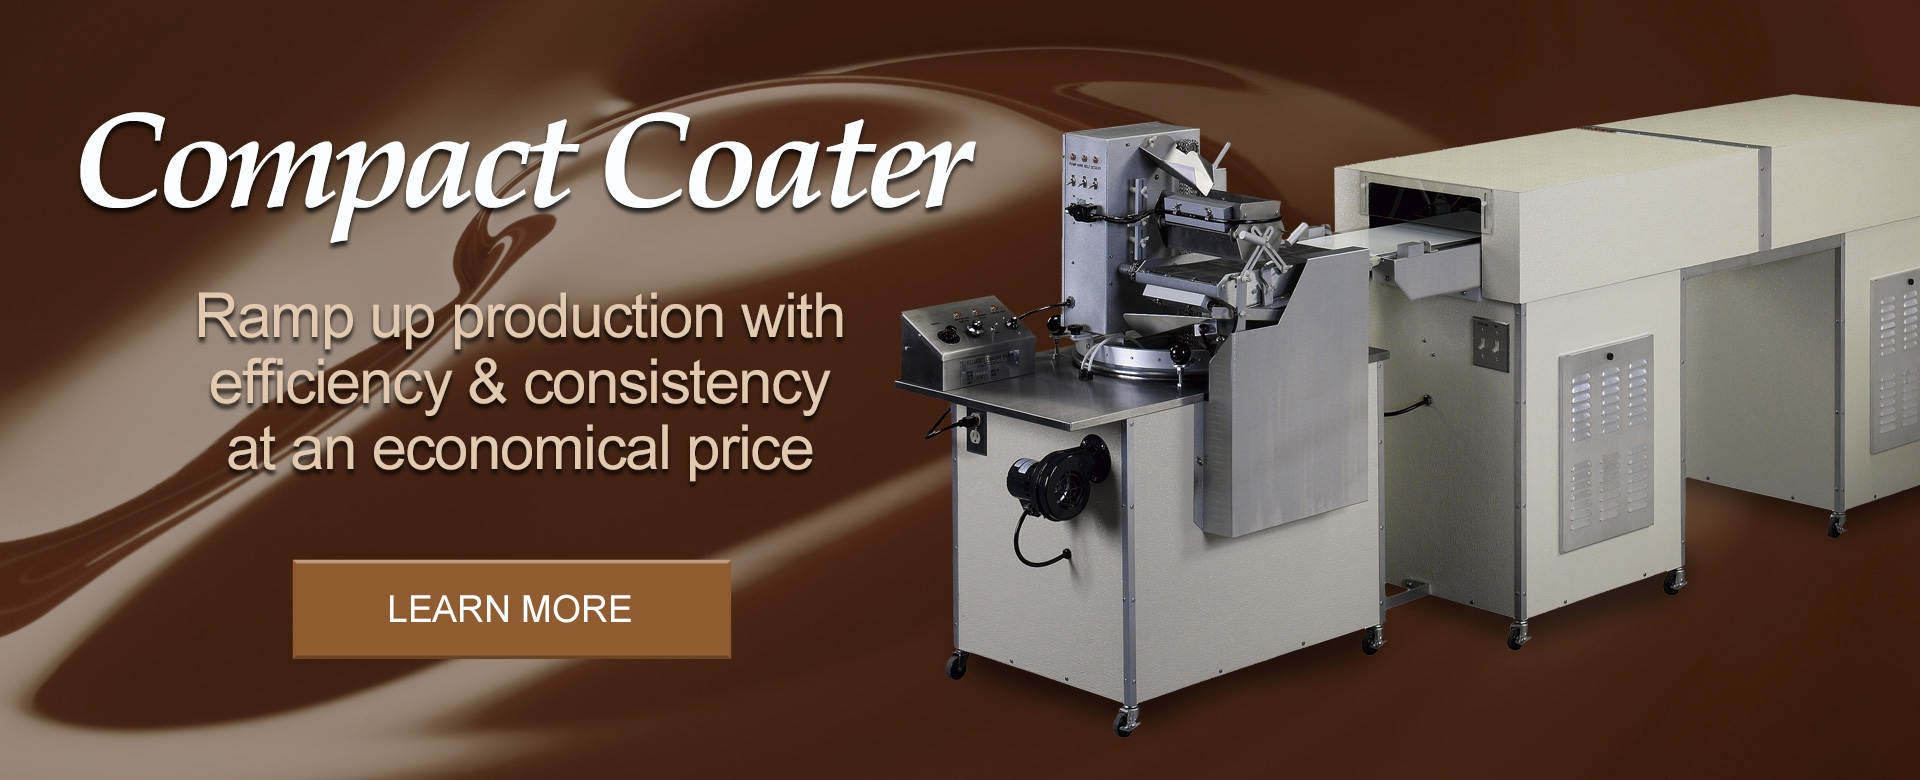 Hilliard's Chocolate Compact Coater Machine